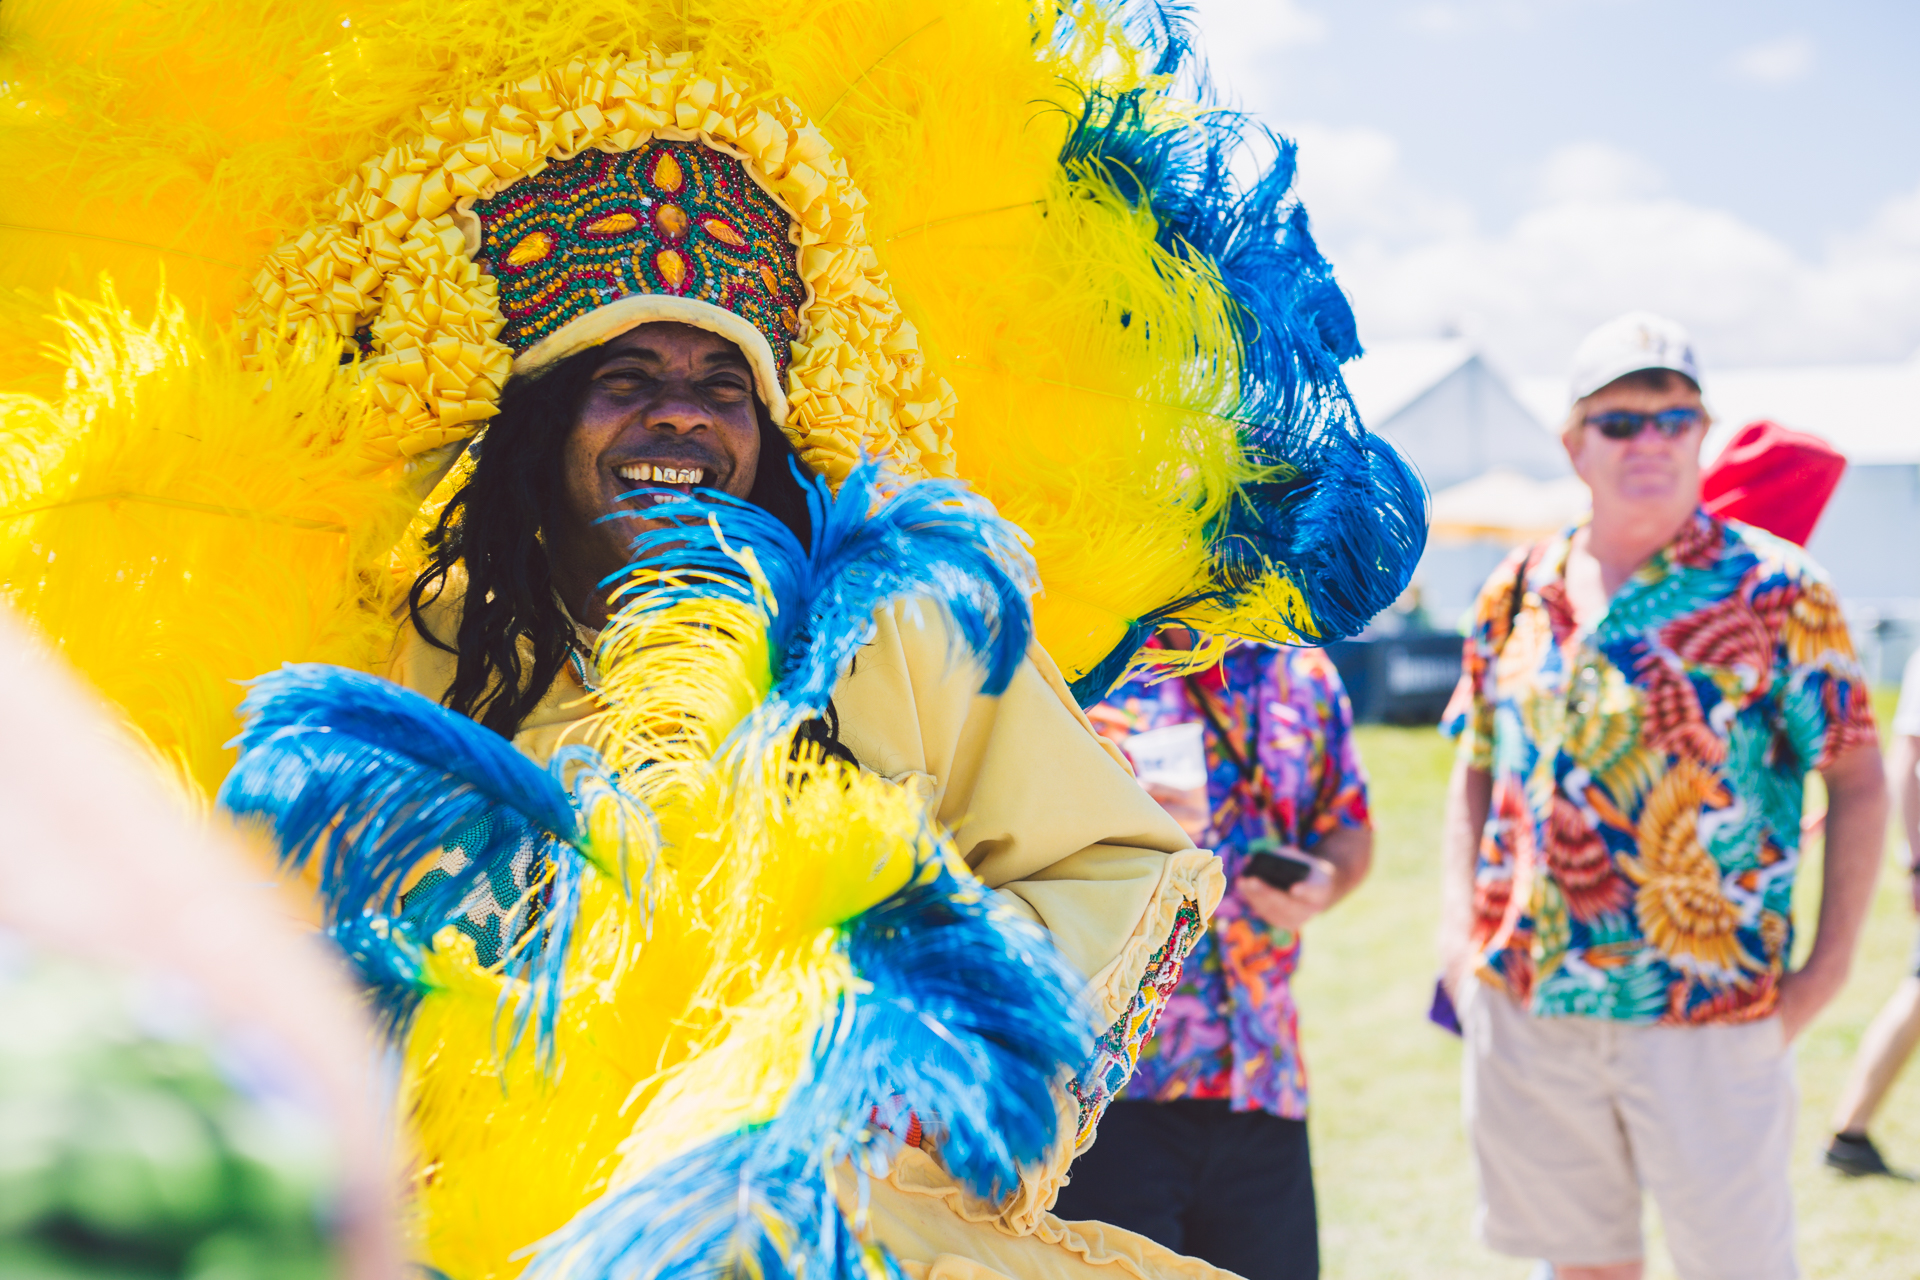 Jazz Fest New Orleans 2018 >> Mardi Gras Indians, Social Aid and Pleasure Clubs in New Orleans – Erik Kruthoff Photography